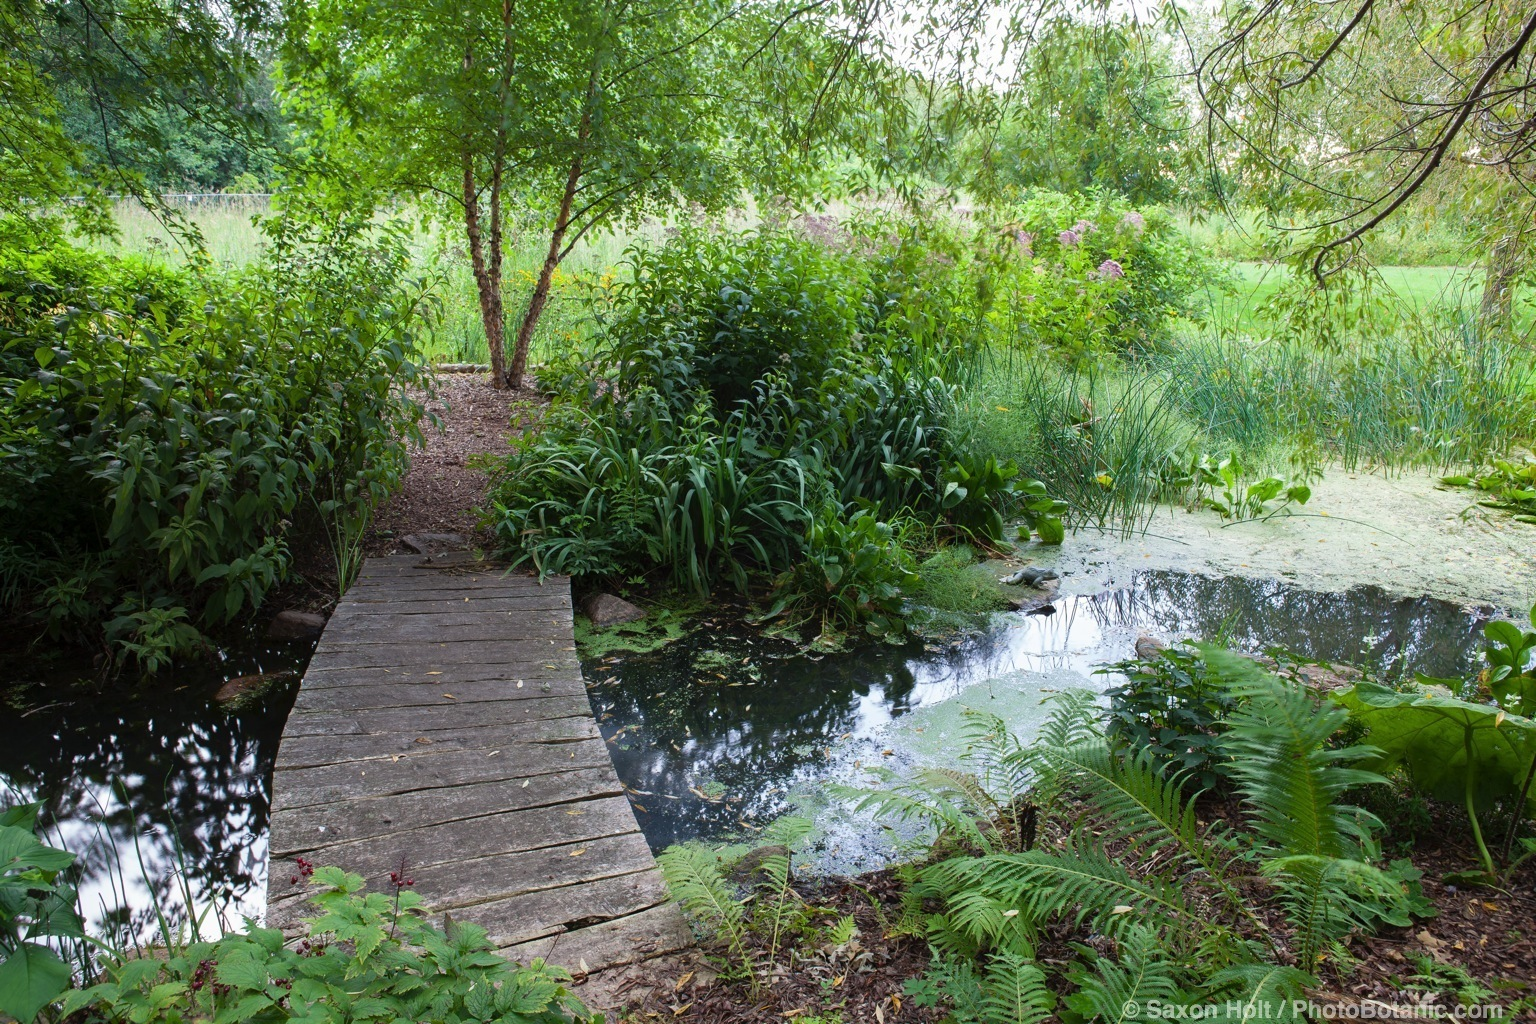 Boardwalk wooden bridge path over stream in naturalistic garden